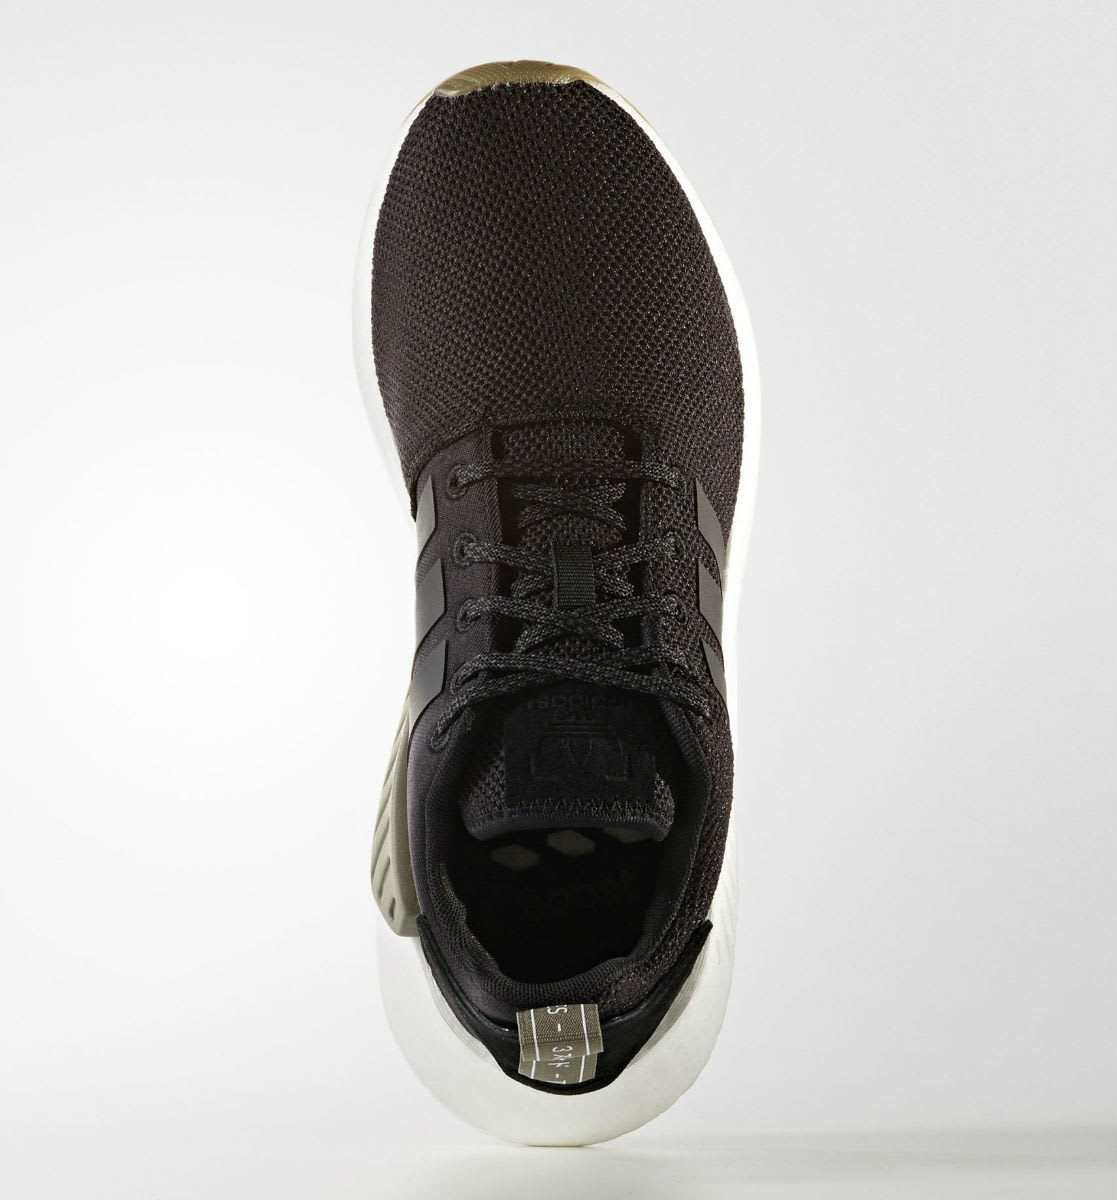 Adidas NMD_R2 Black Gum Release Date Top BY9917